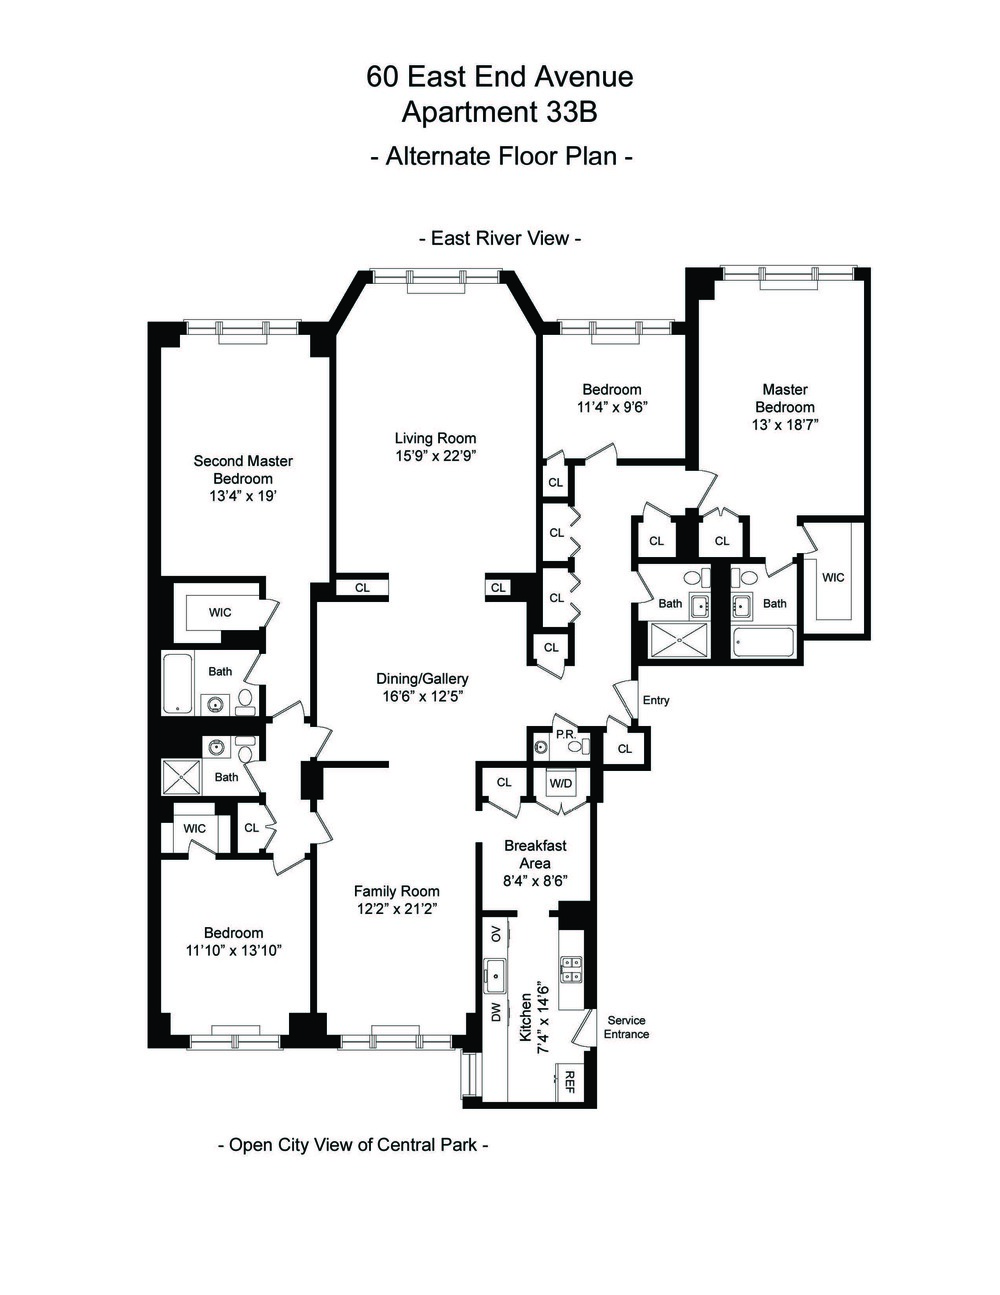 Floor Plan - 60 East End Avenue 33B ALTERNATE.jpg